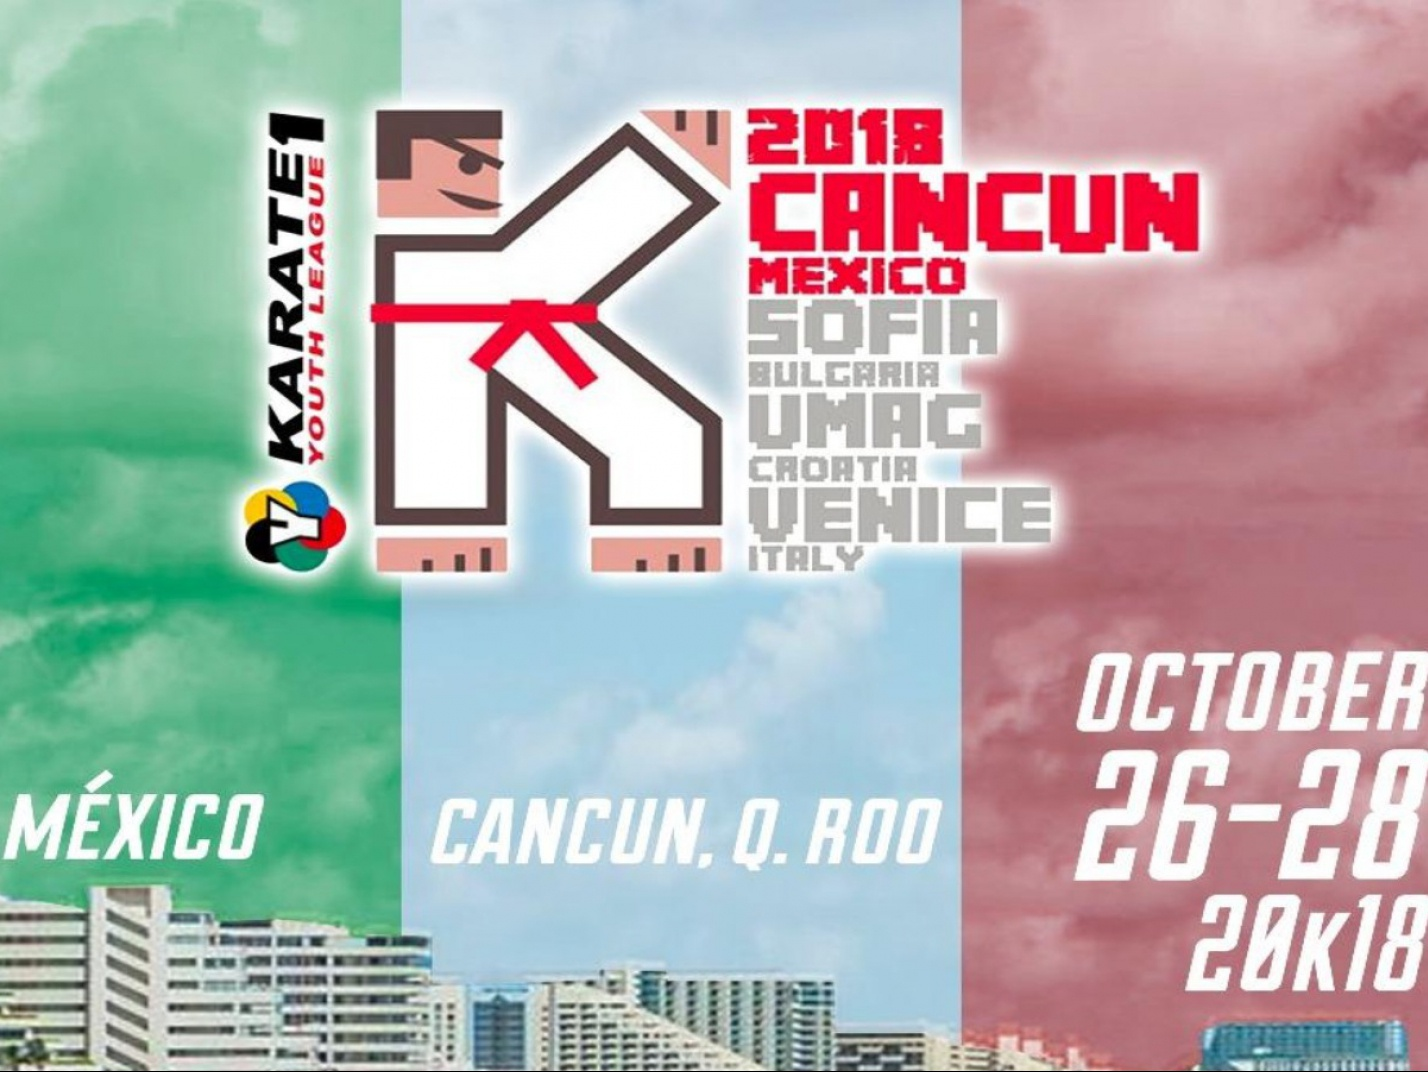 KARATE1 YOUTH LEAGUE - CANCUN-QUITANA ROO 2018